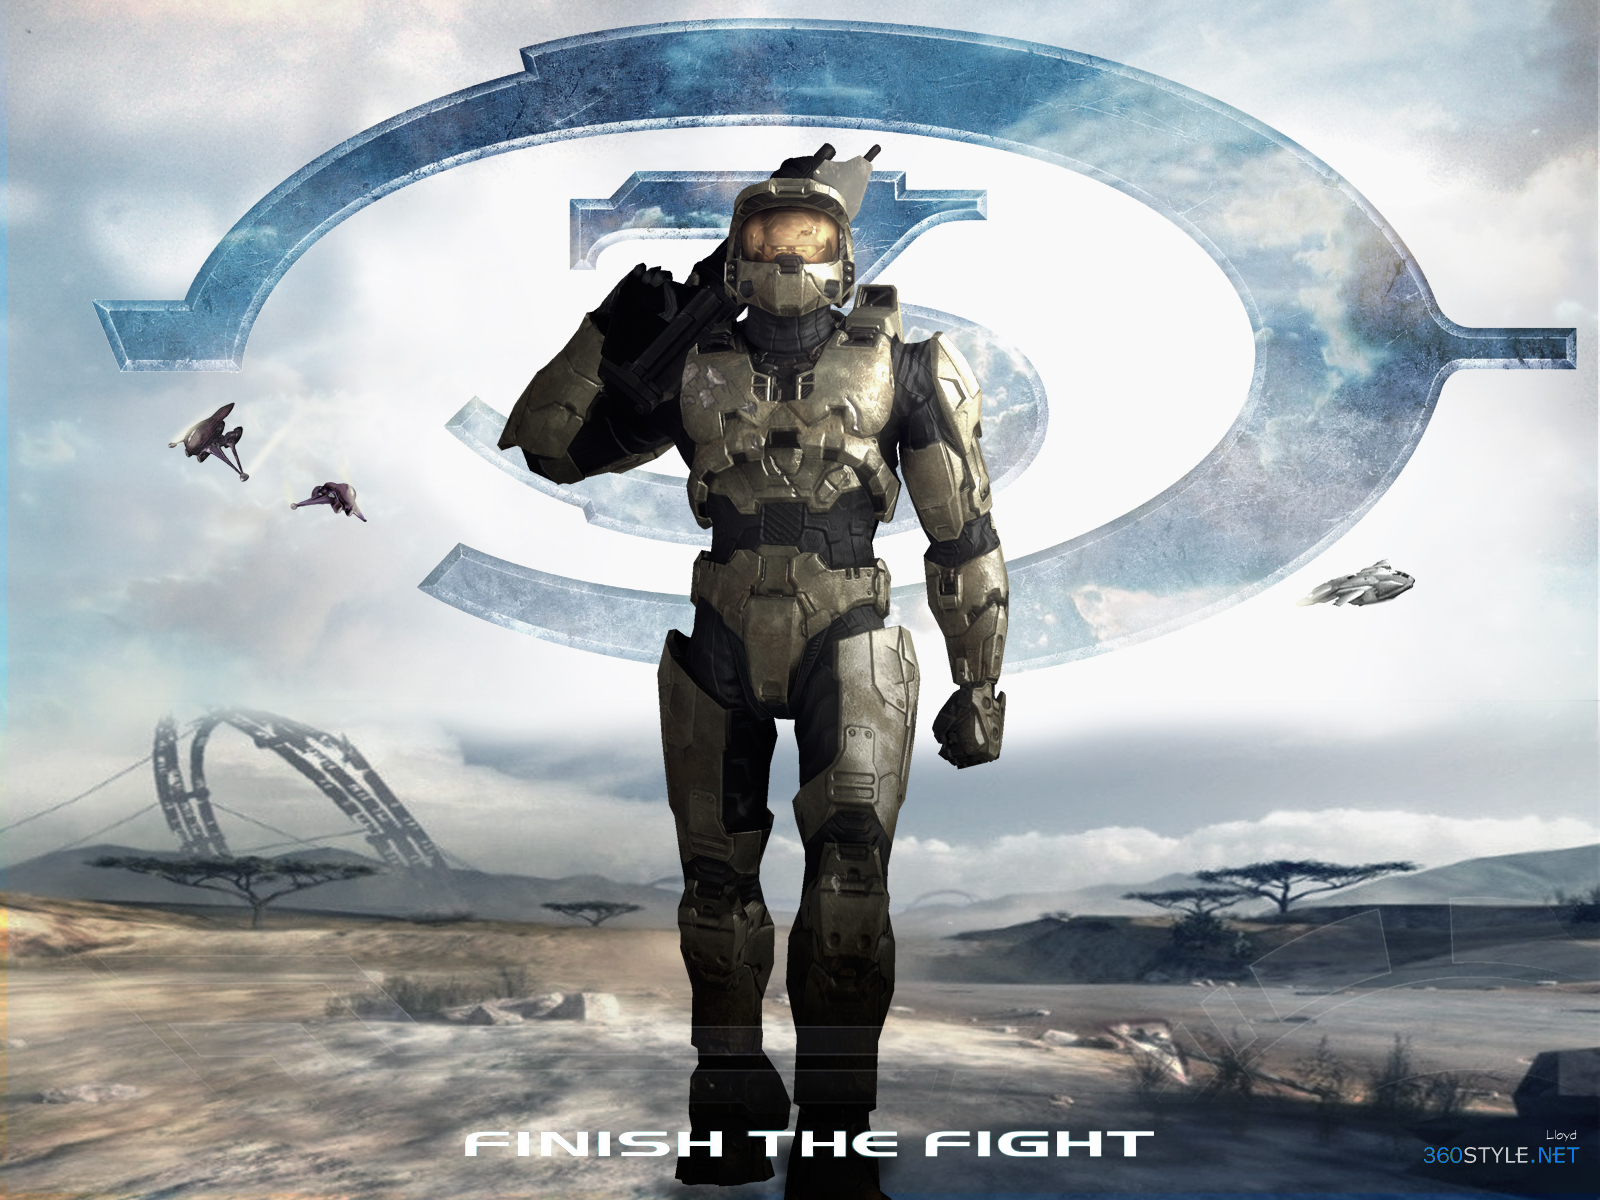 halo 3 wallpaper 4igotgame1075 on deviantart